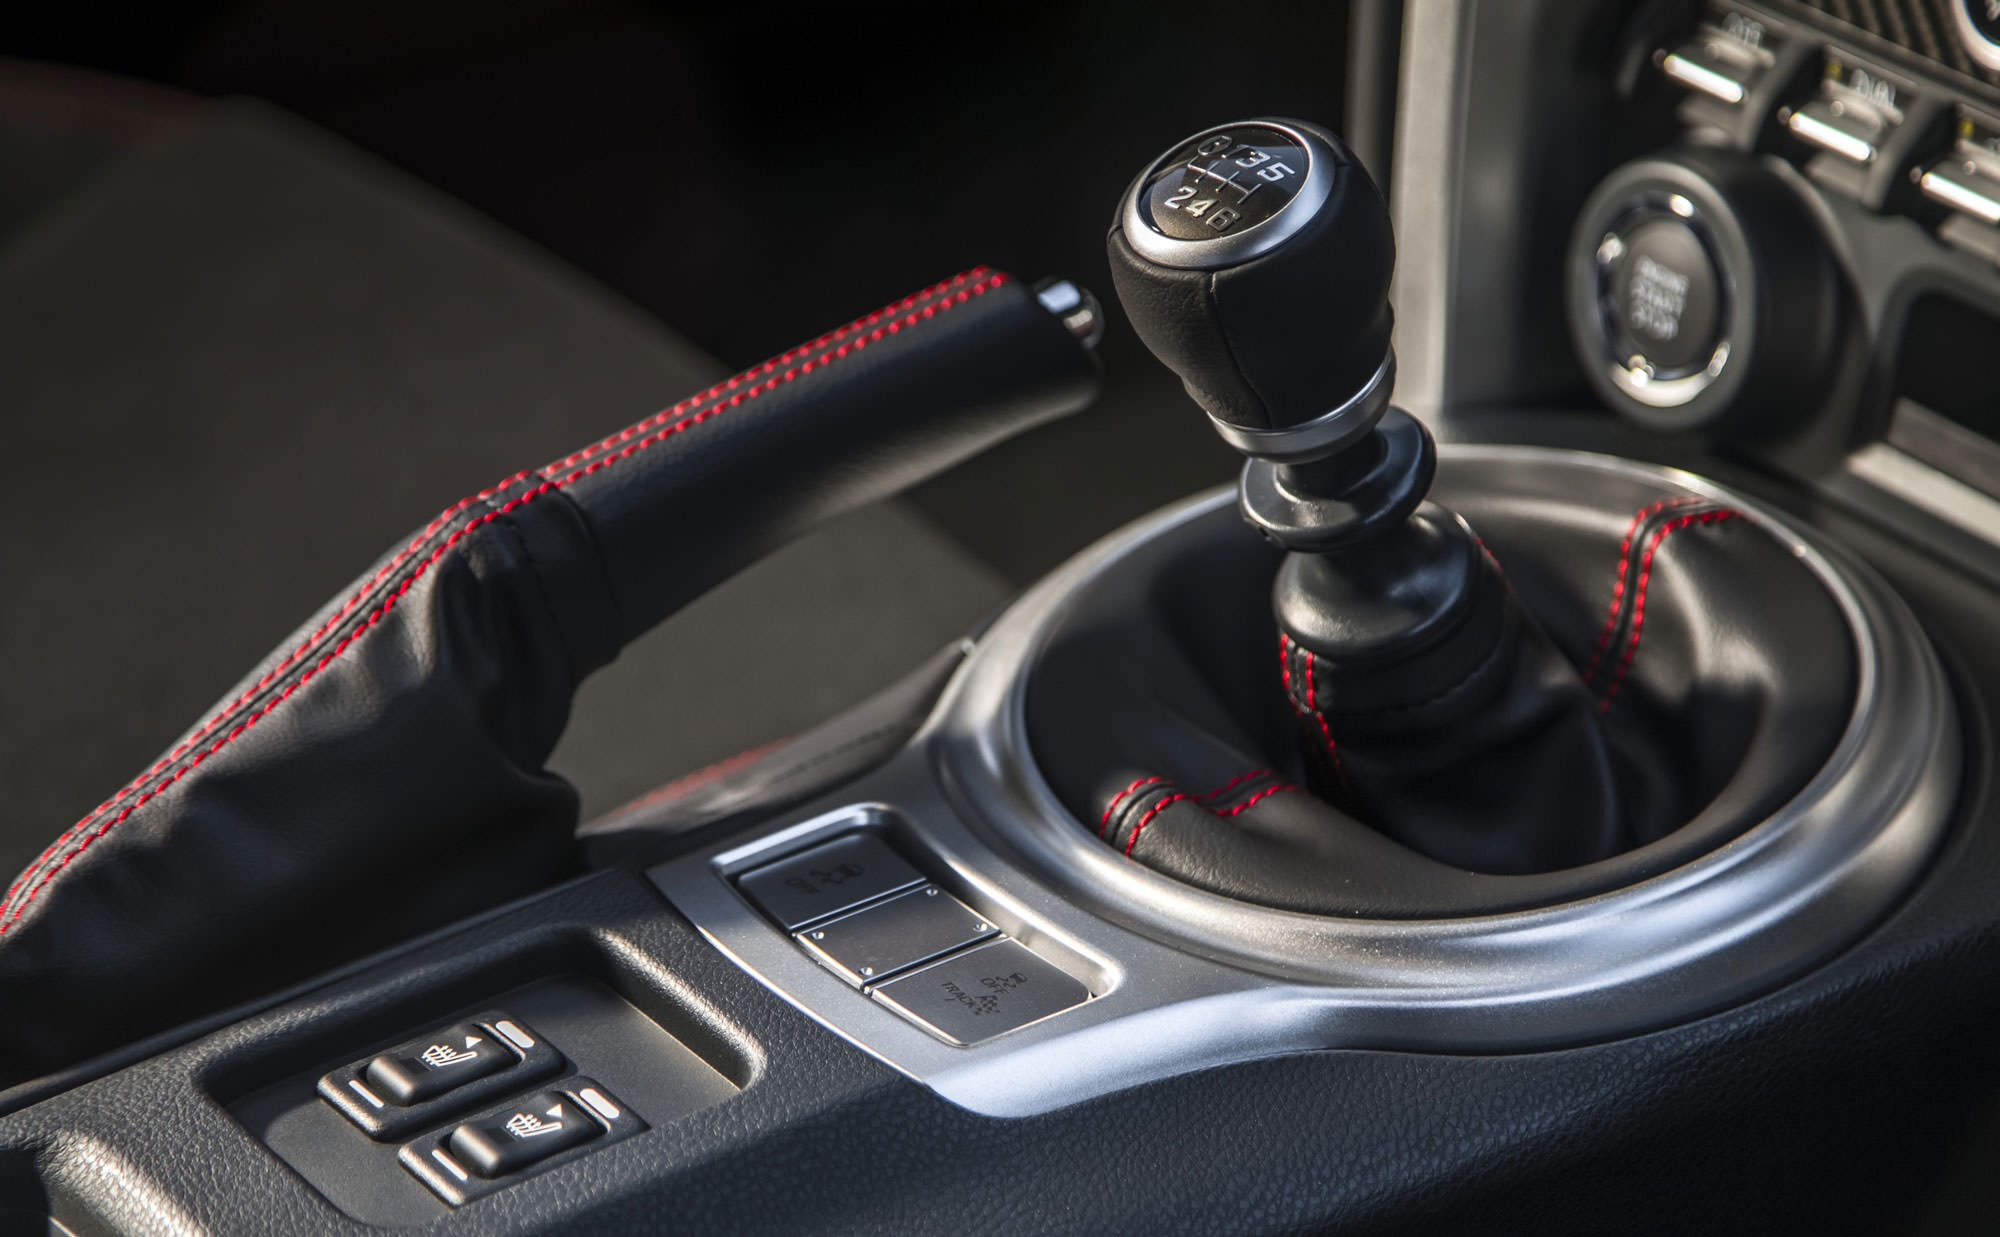 Do Manual Transmissions Get Better Mileage?